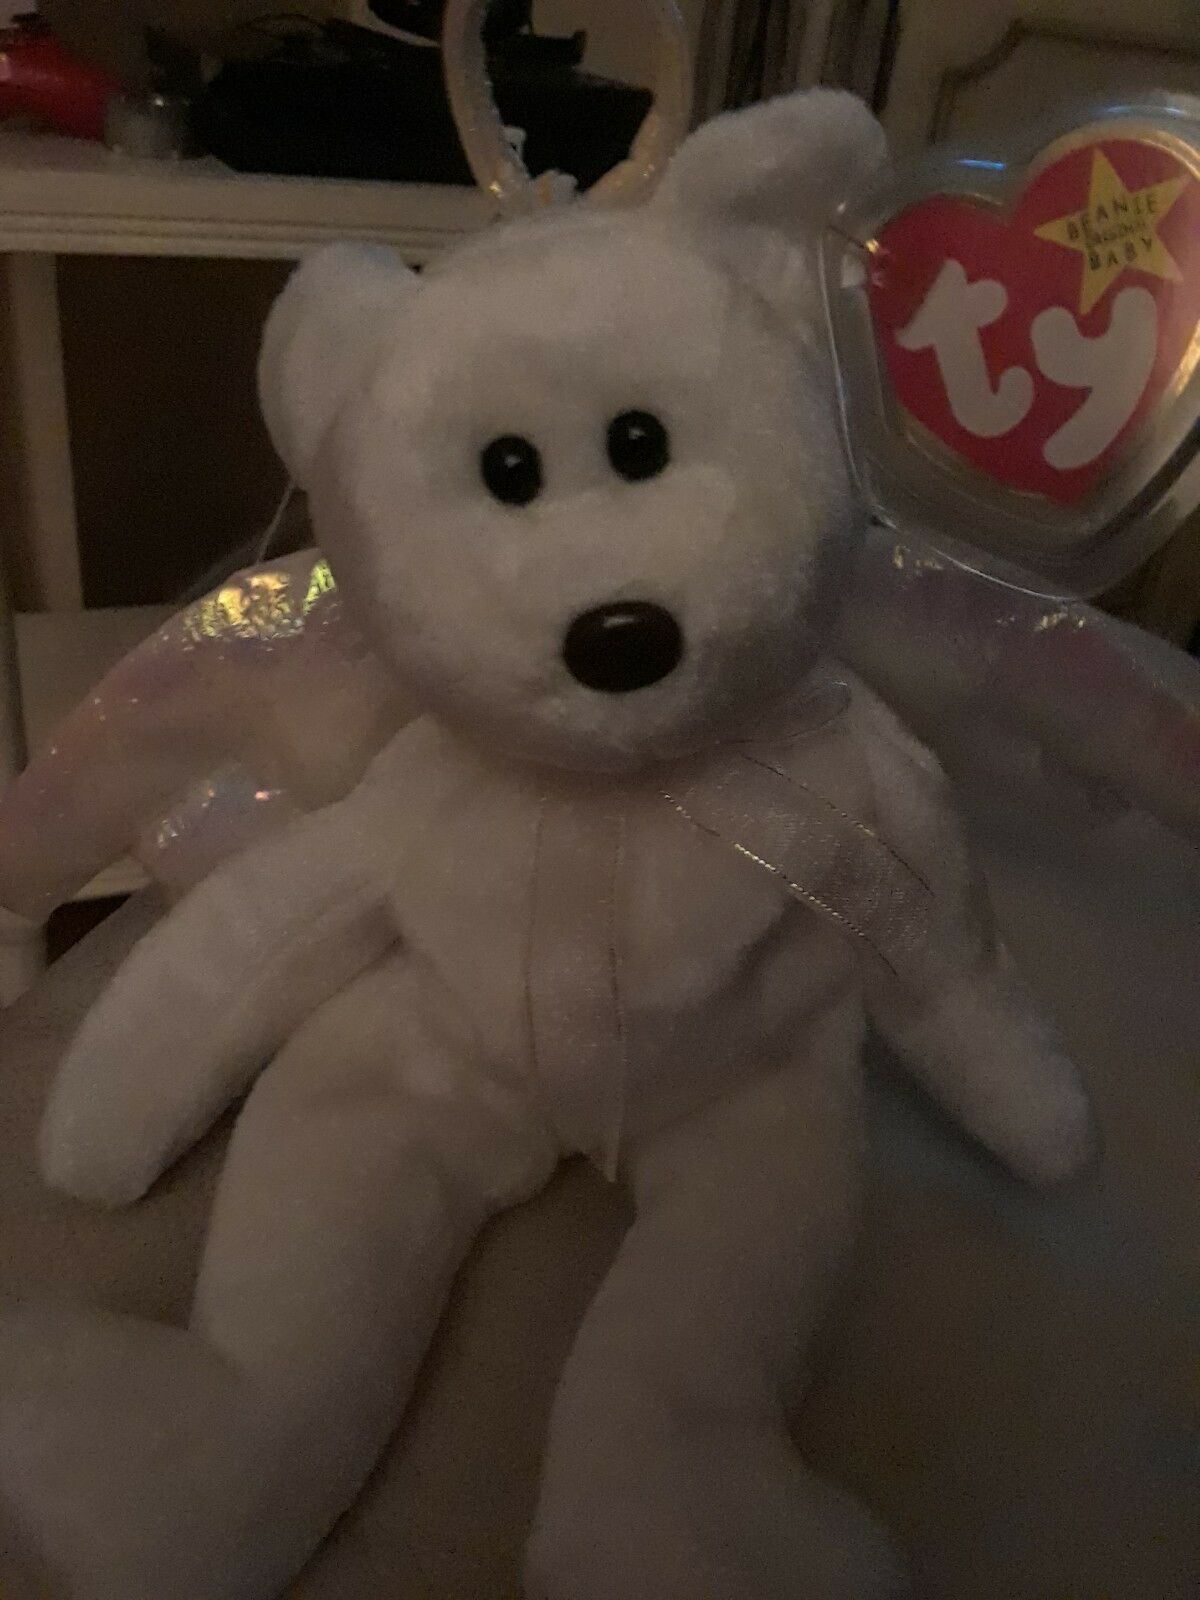 TY 1998 'Halo' Beanie Baby with Errors Errors Errors and Brown Nose 0648e2